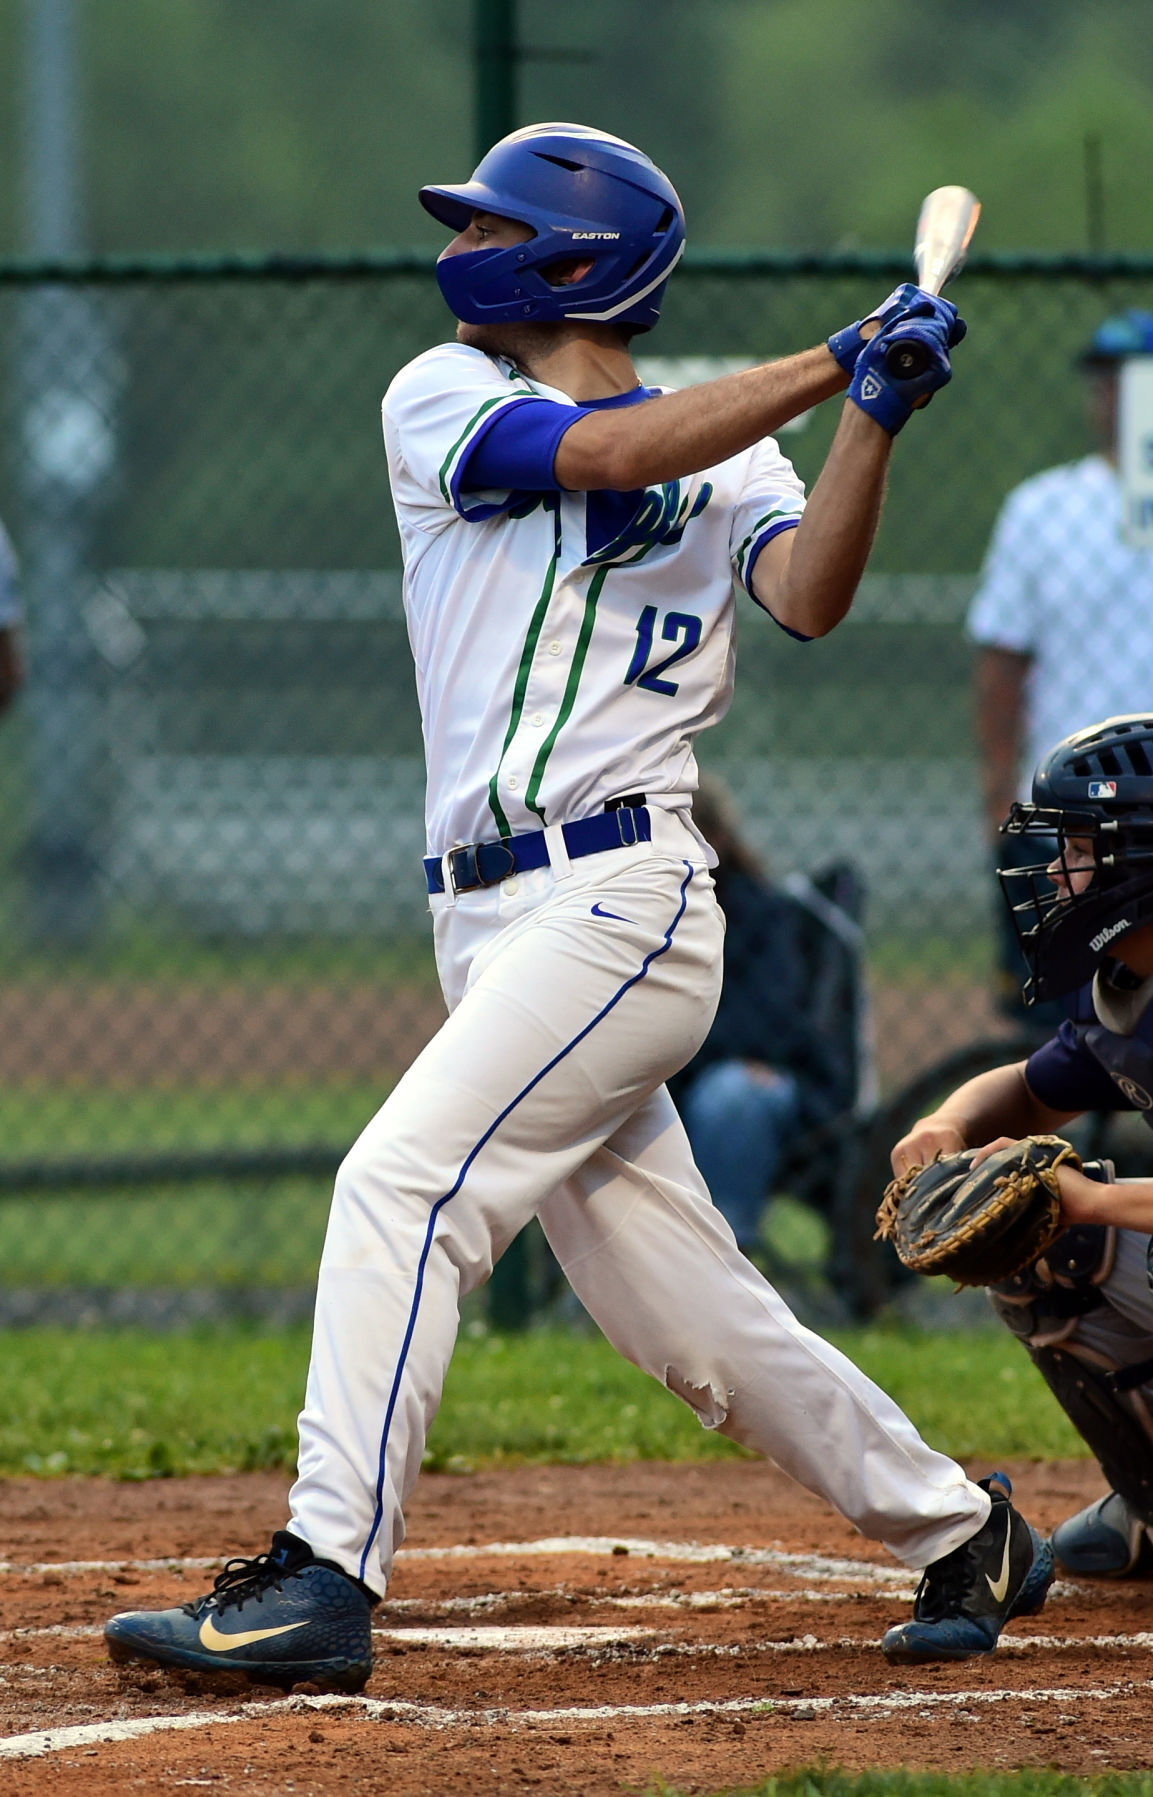 RCB Lopez goes oppo to right for an RBI triple in the 2nd inning.JPG